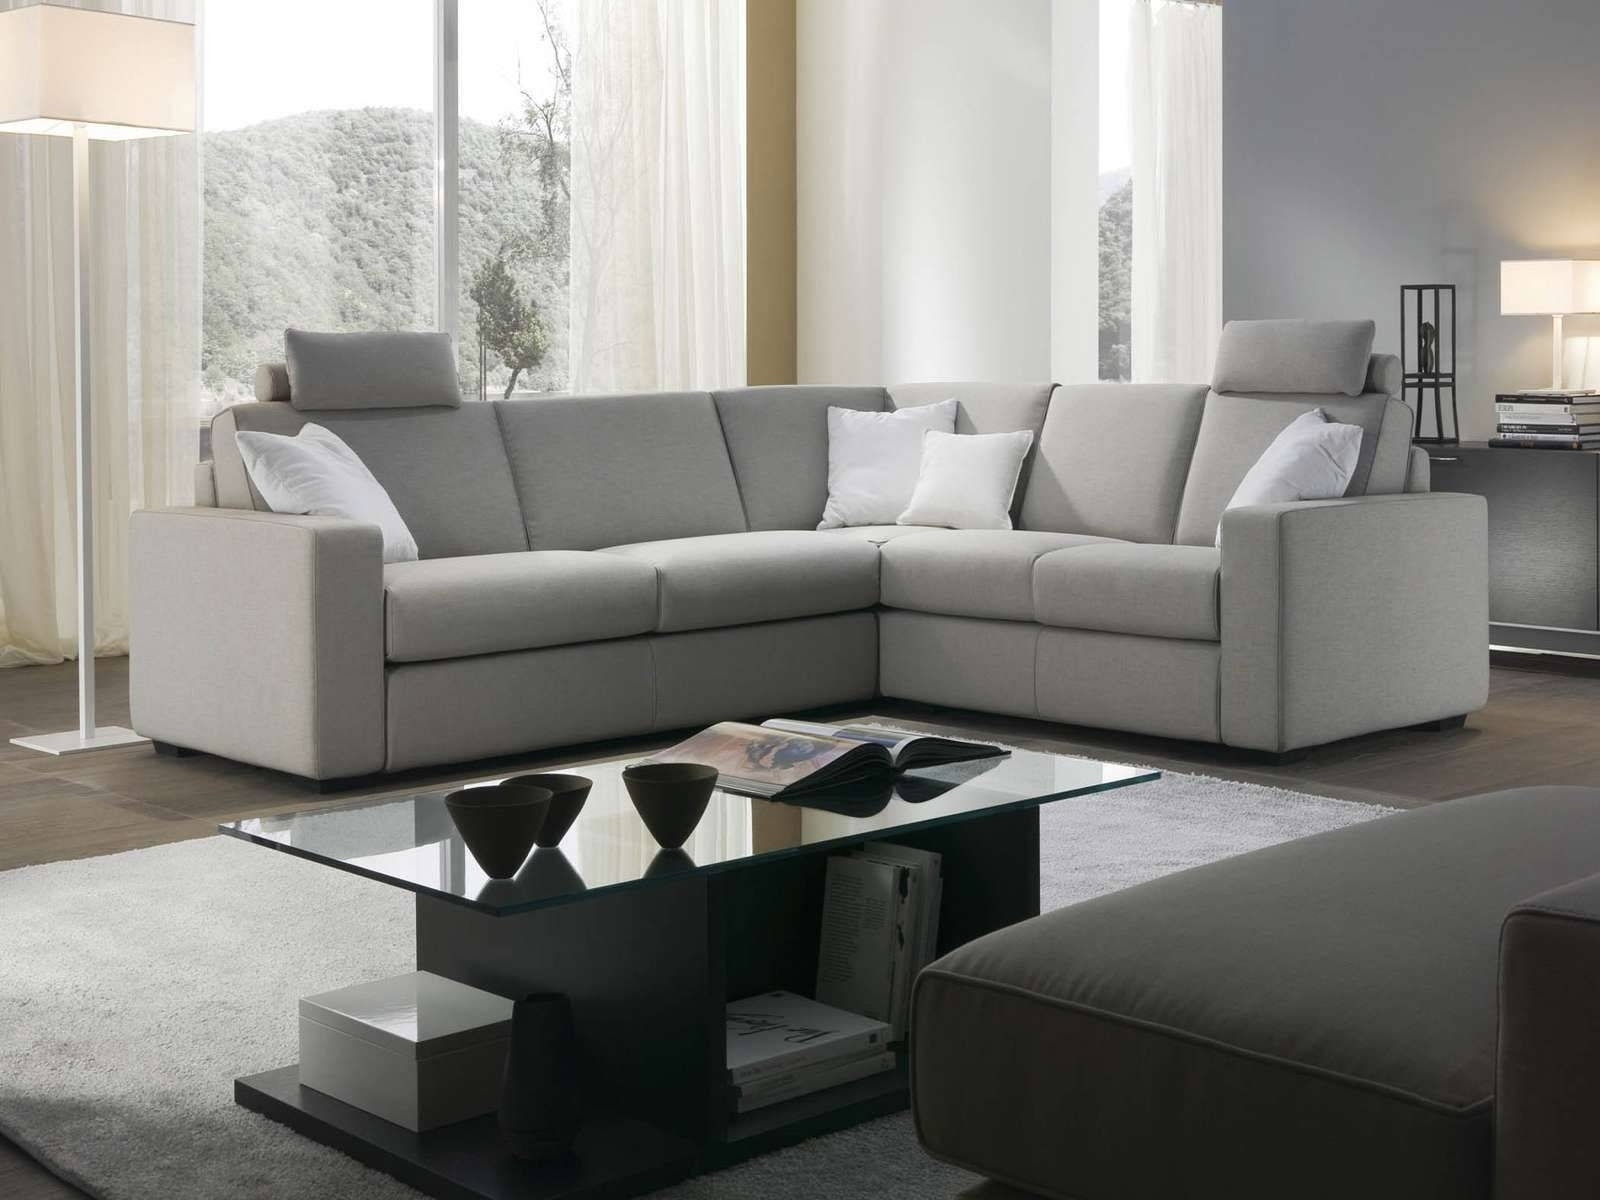 Top 15 of divani chateau d 39 ax leather sofas for Divani letto angolari chateau d ax